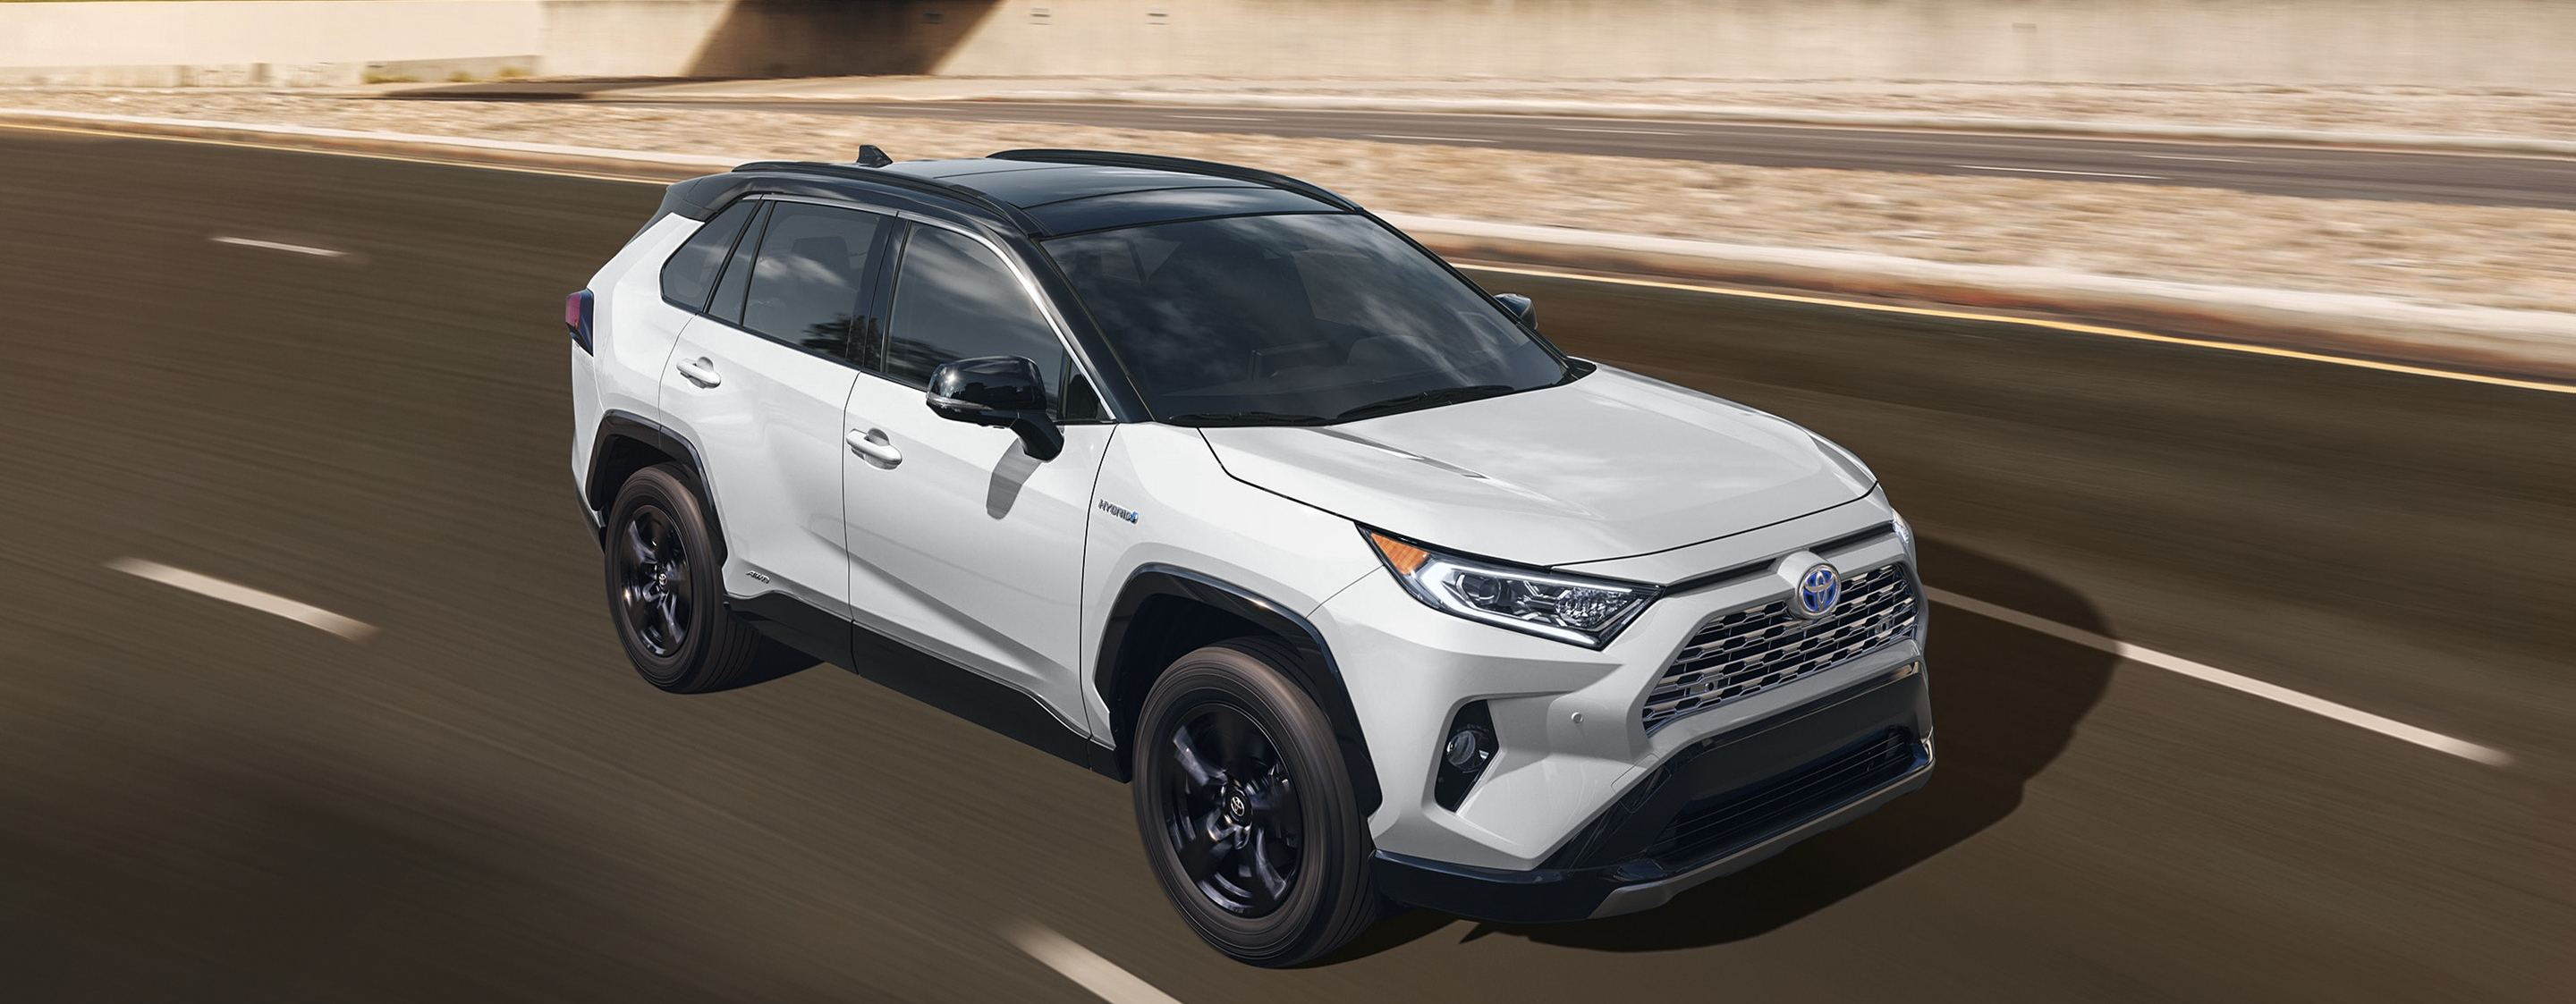 2020 Toyota RAV4 Lease near Leawood, KS, 66209